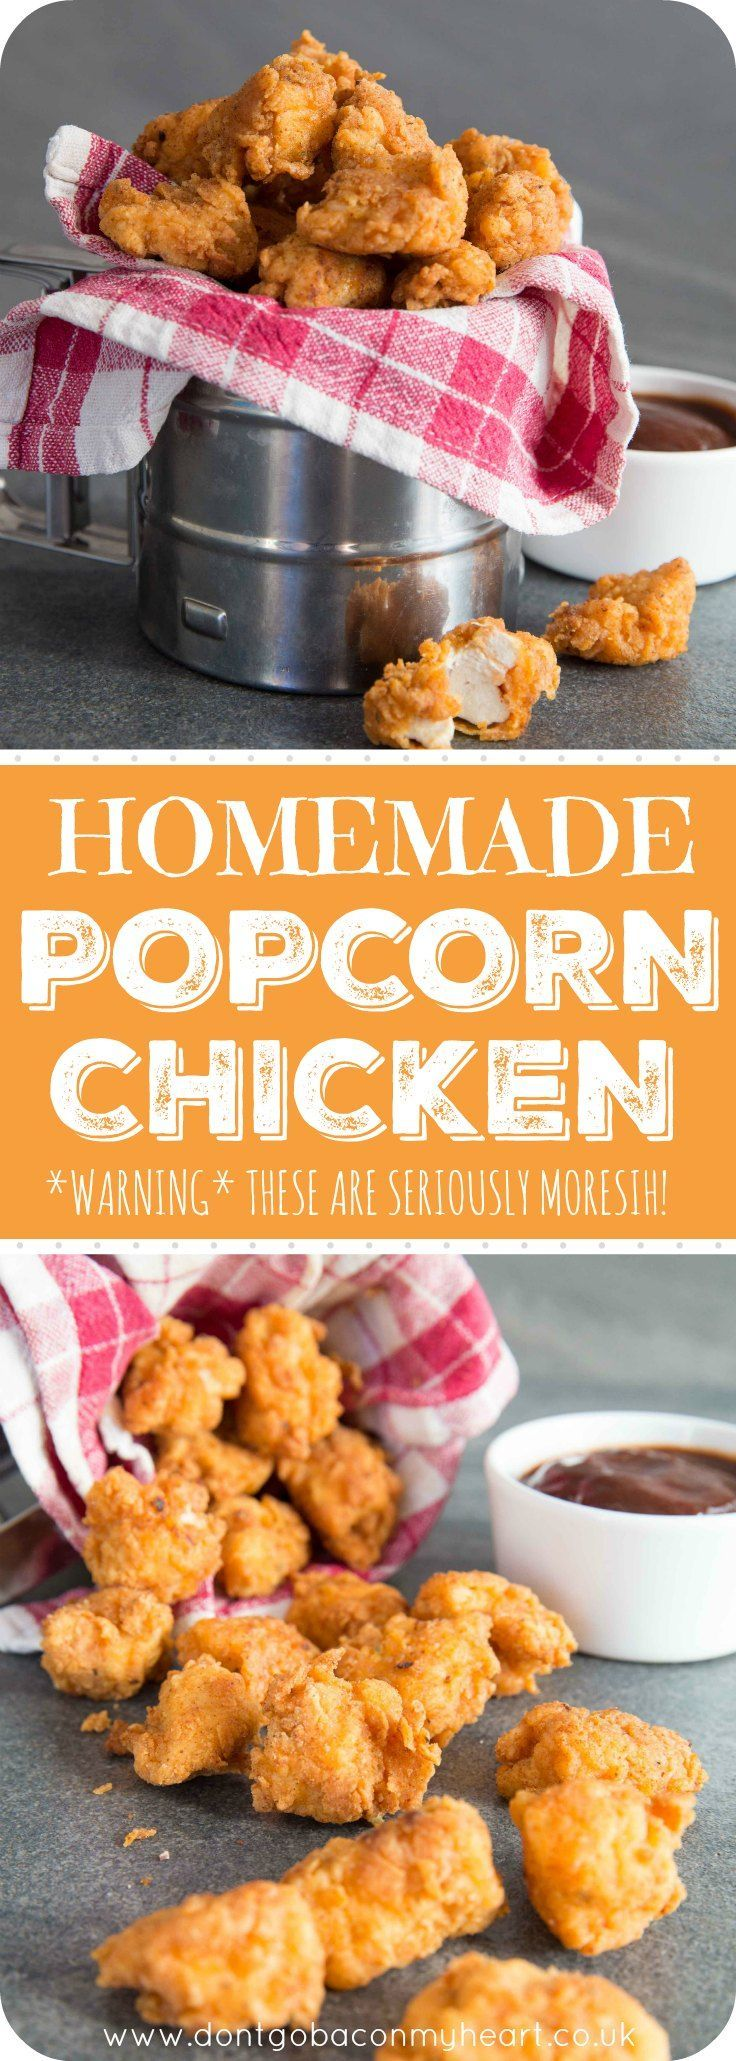 Homemade Popcorn Chicken Pin